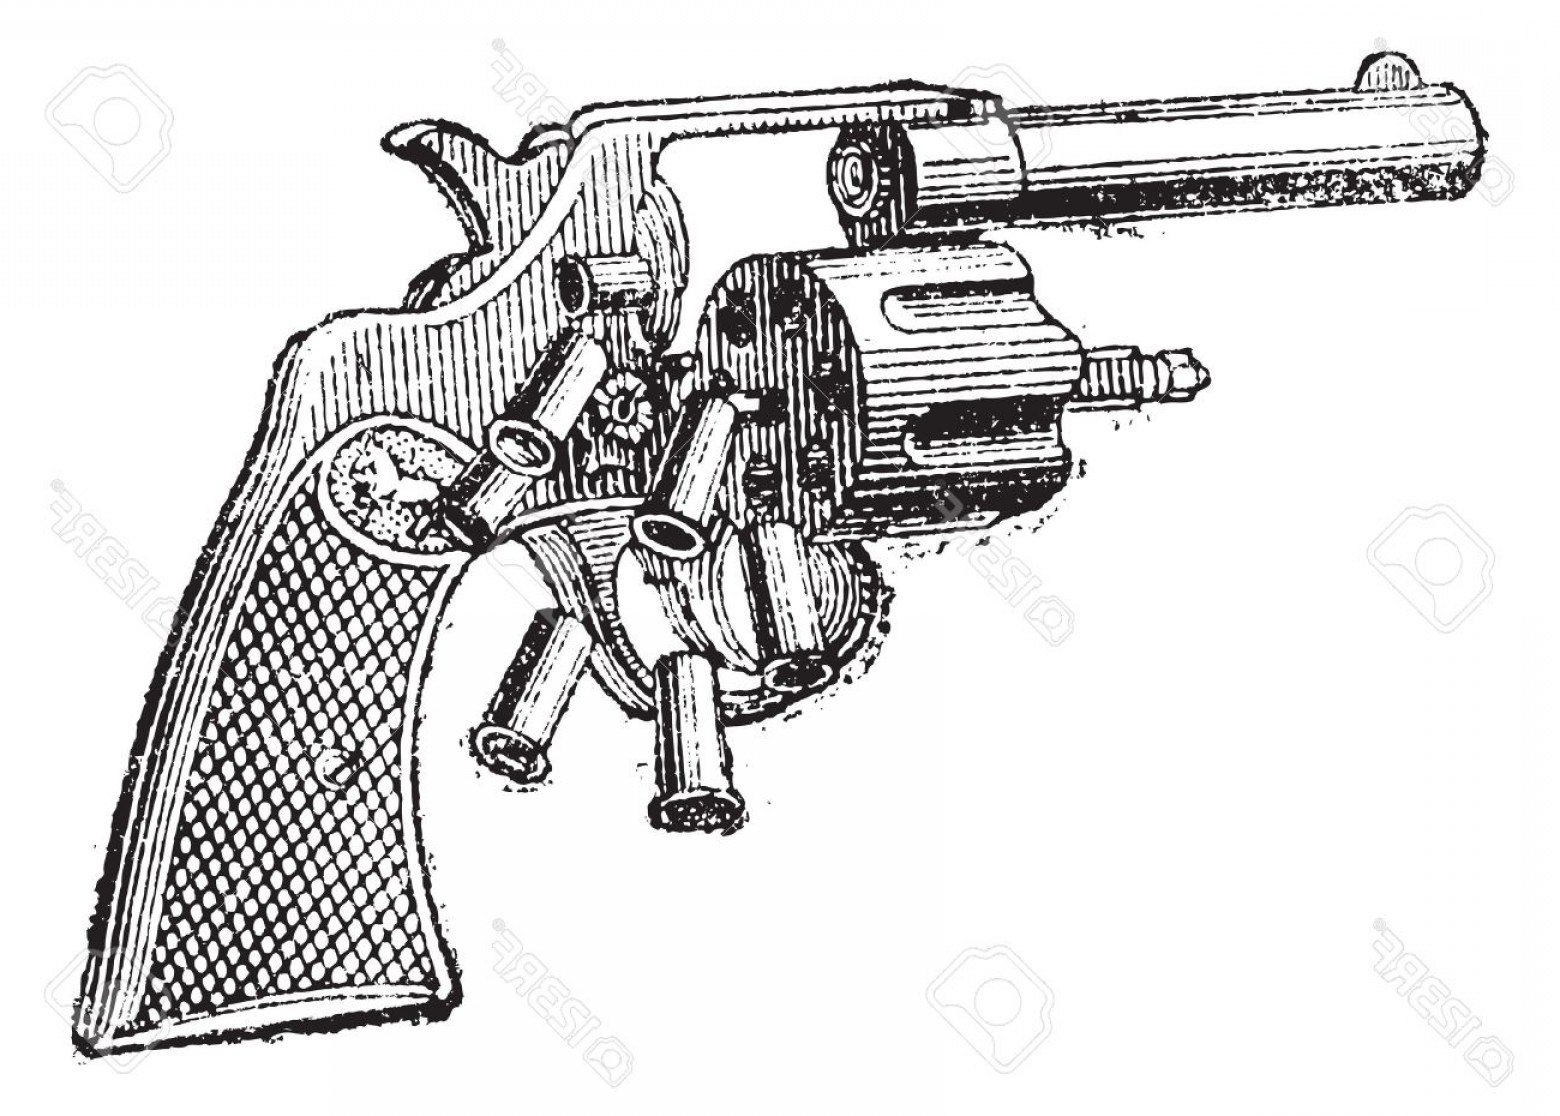 Vector Old Colt Revolvers: Photocolt Revolver Vintage Engraved Illustration Dictionary Of Words And Things Larive And Fleury